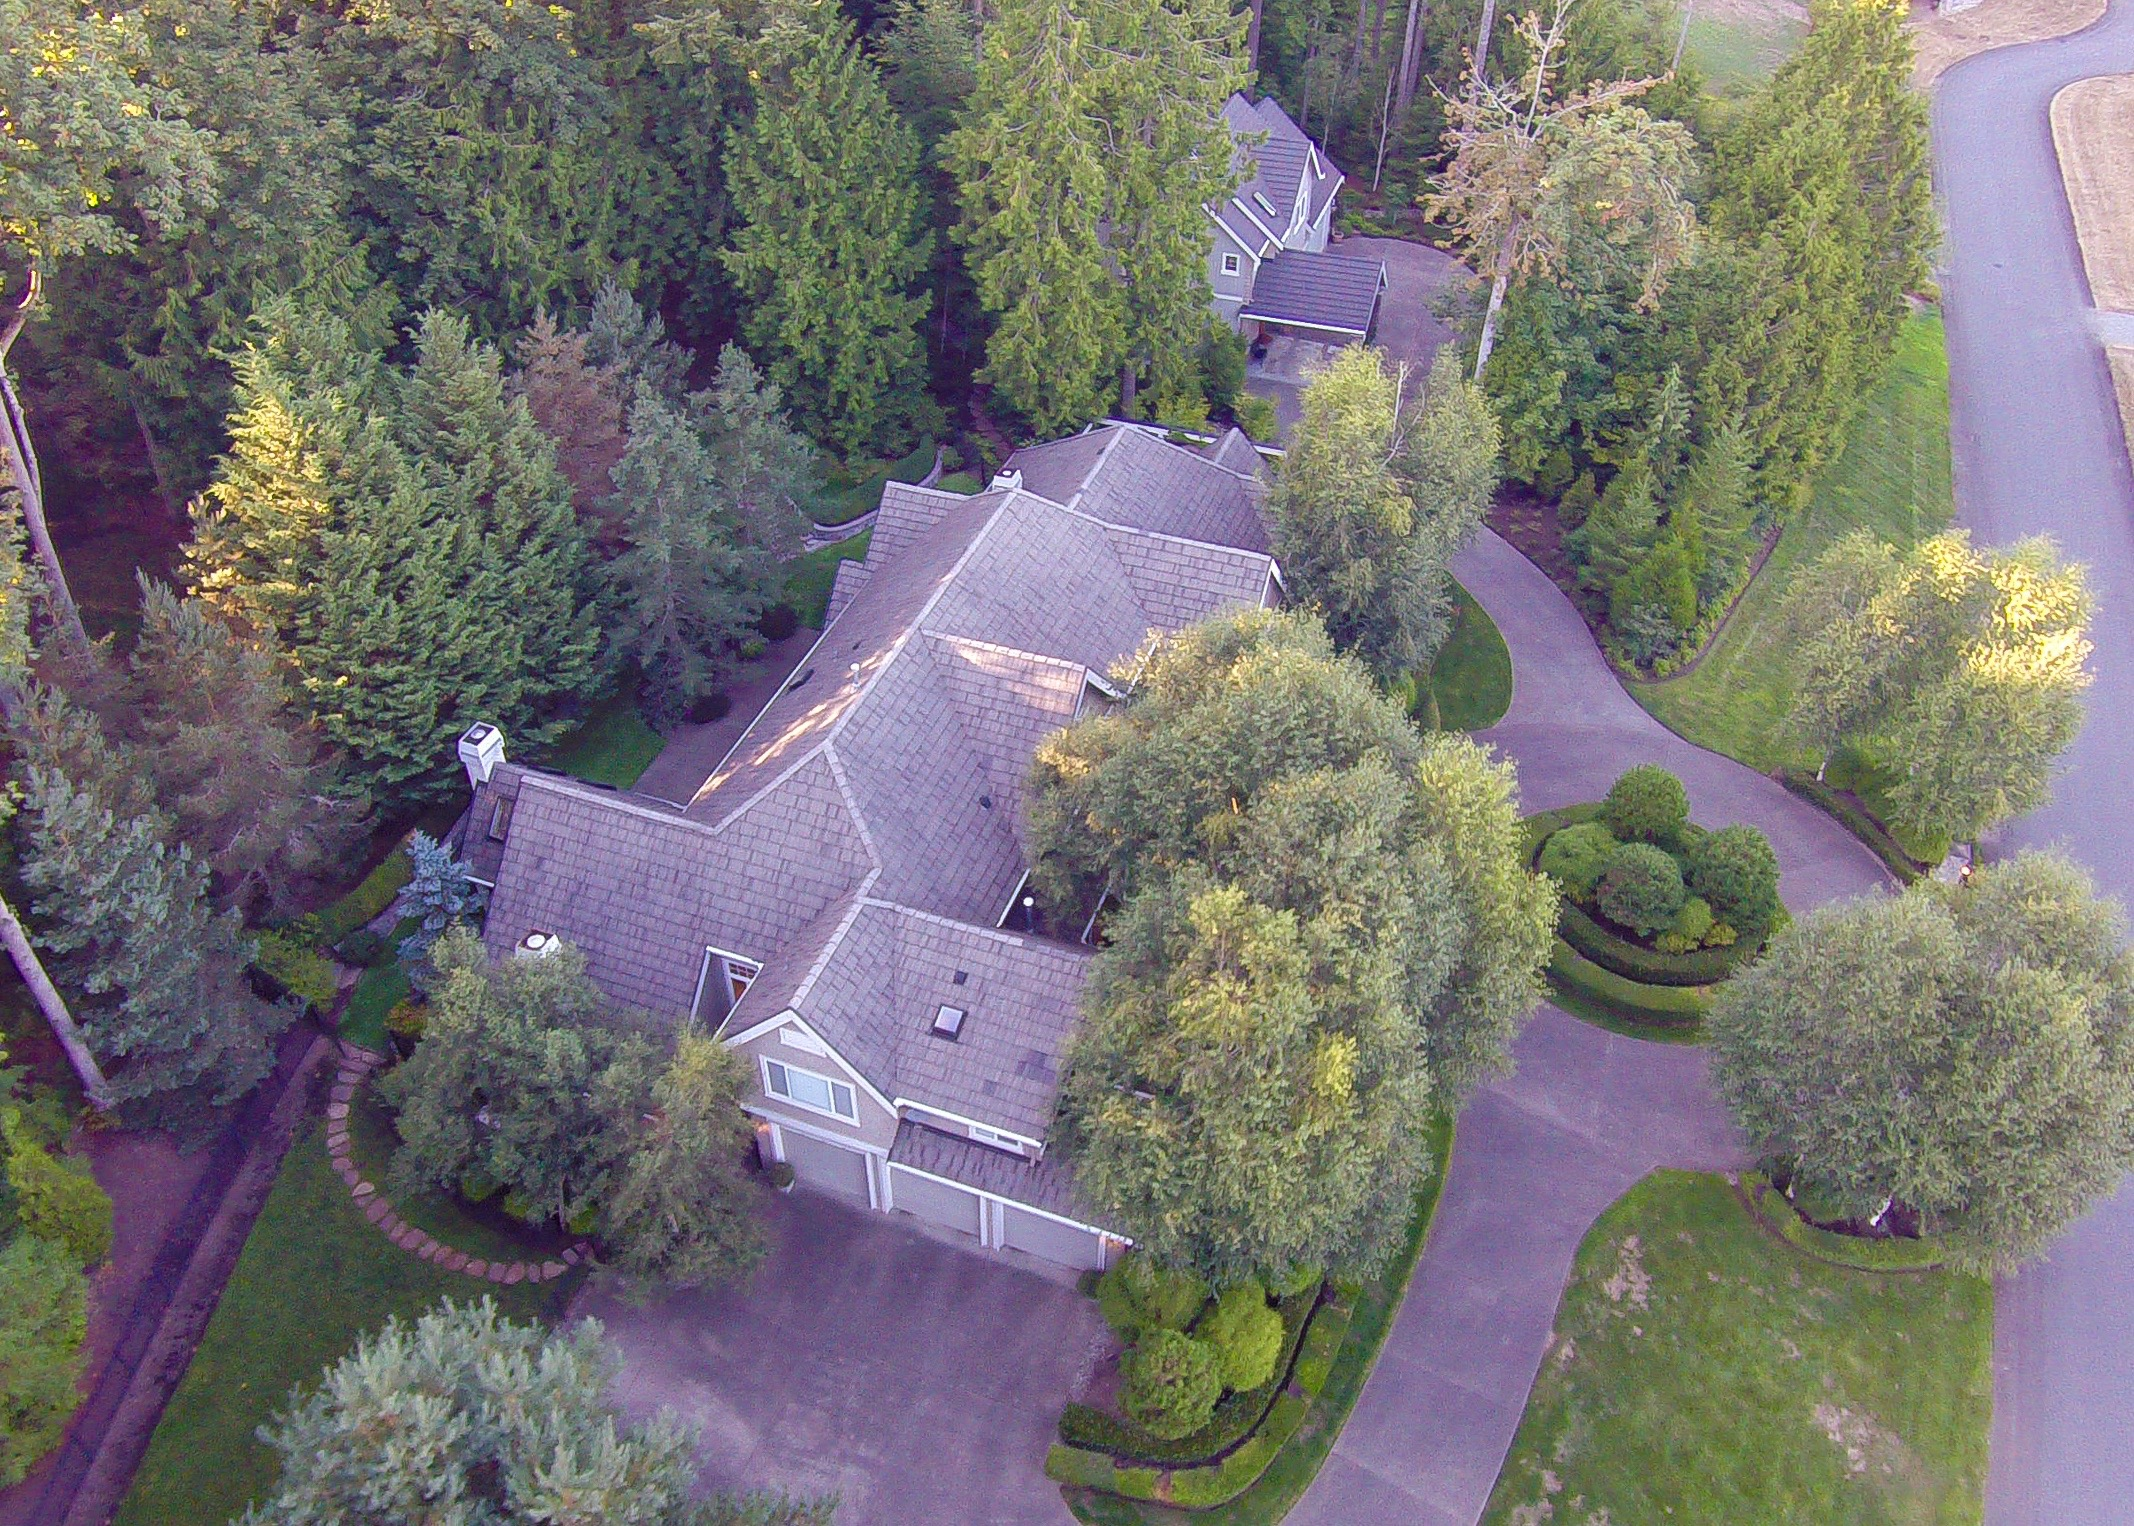 Single Family Home for Sale at Blakely Woods Estate 29108 NE 3rd Way Carnation, Washington 98014 United States